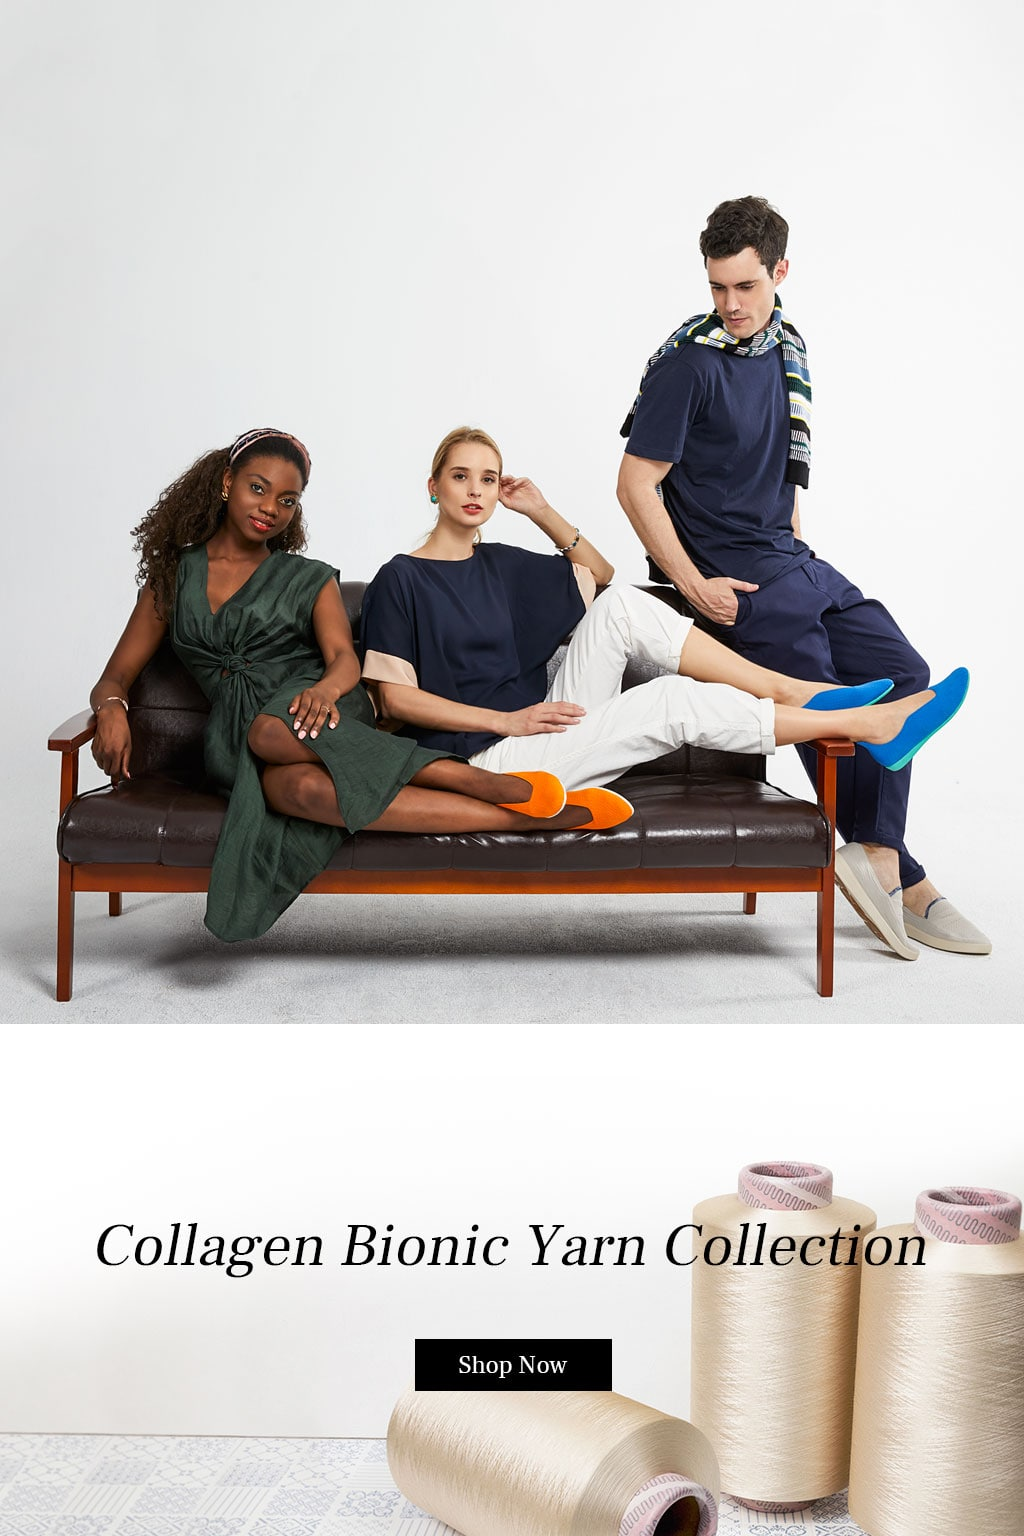 En-Bionic Yarn Collection A